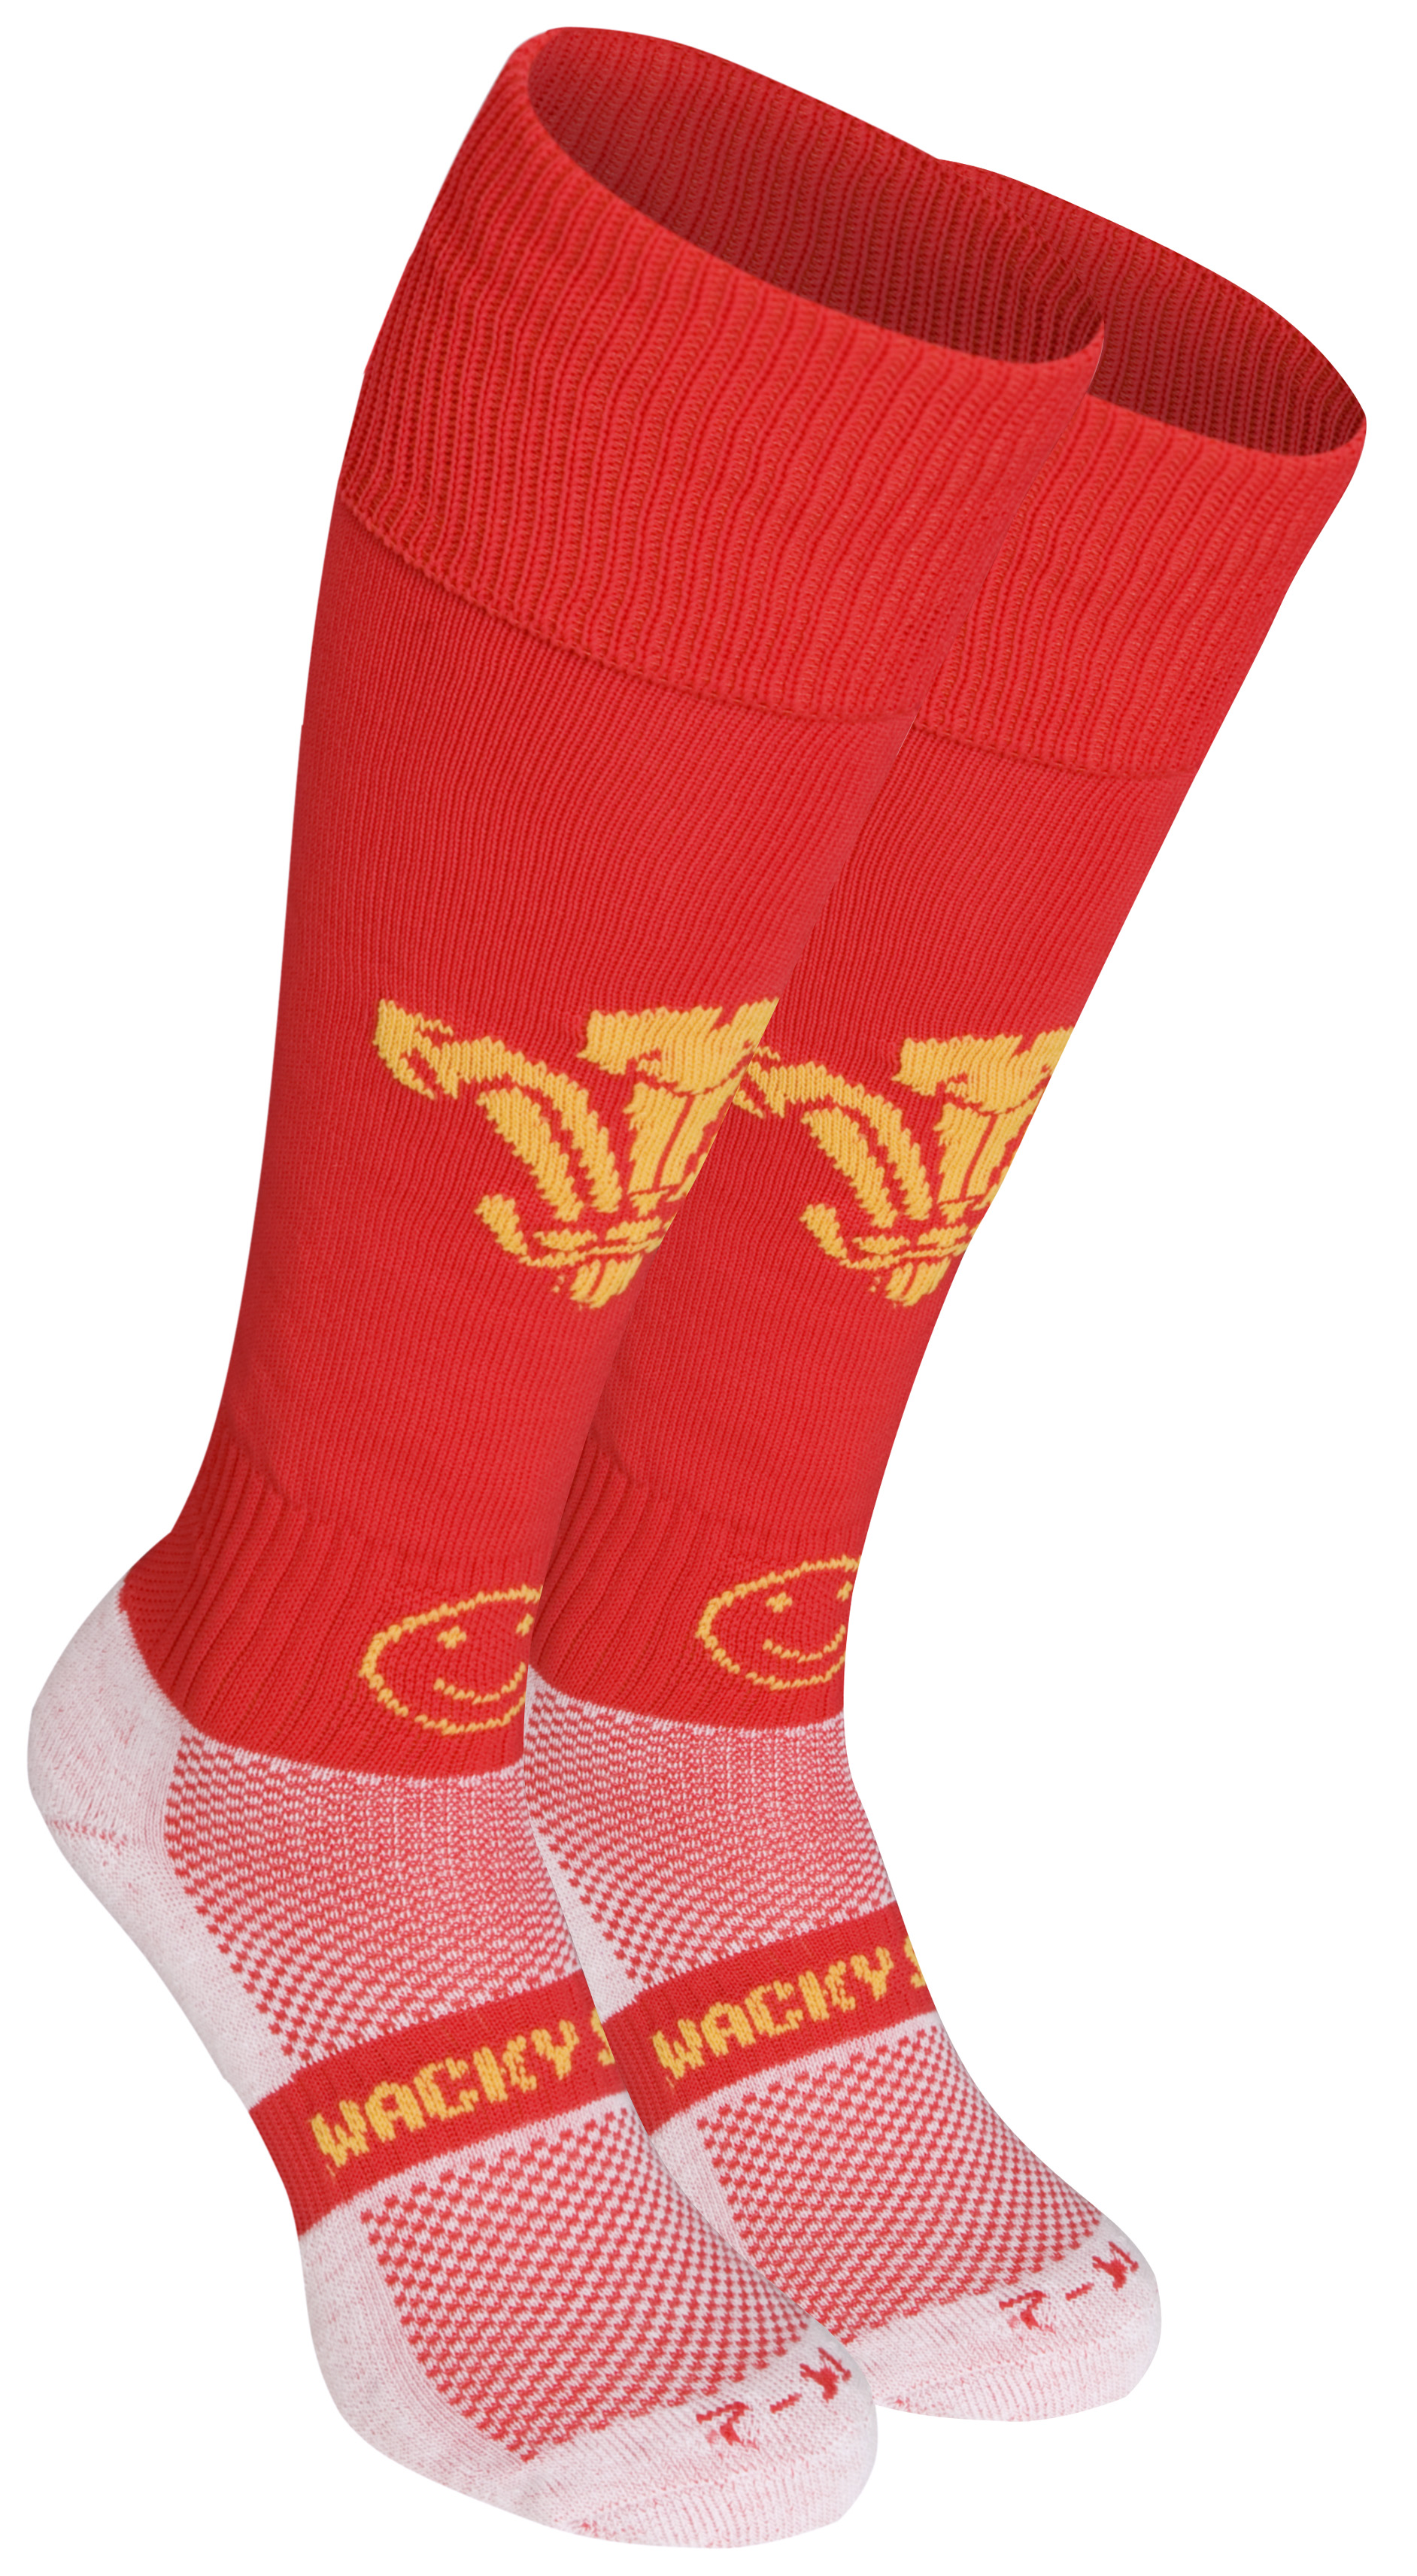 WackySox Wales Socks - Red - Size 12-14